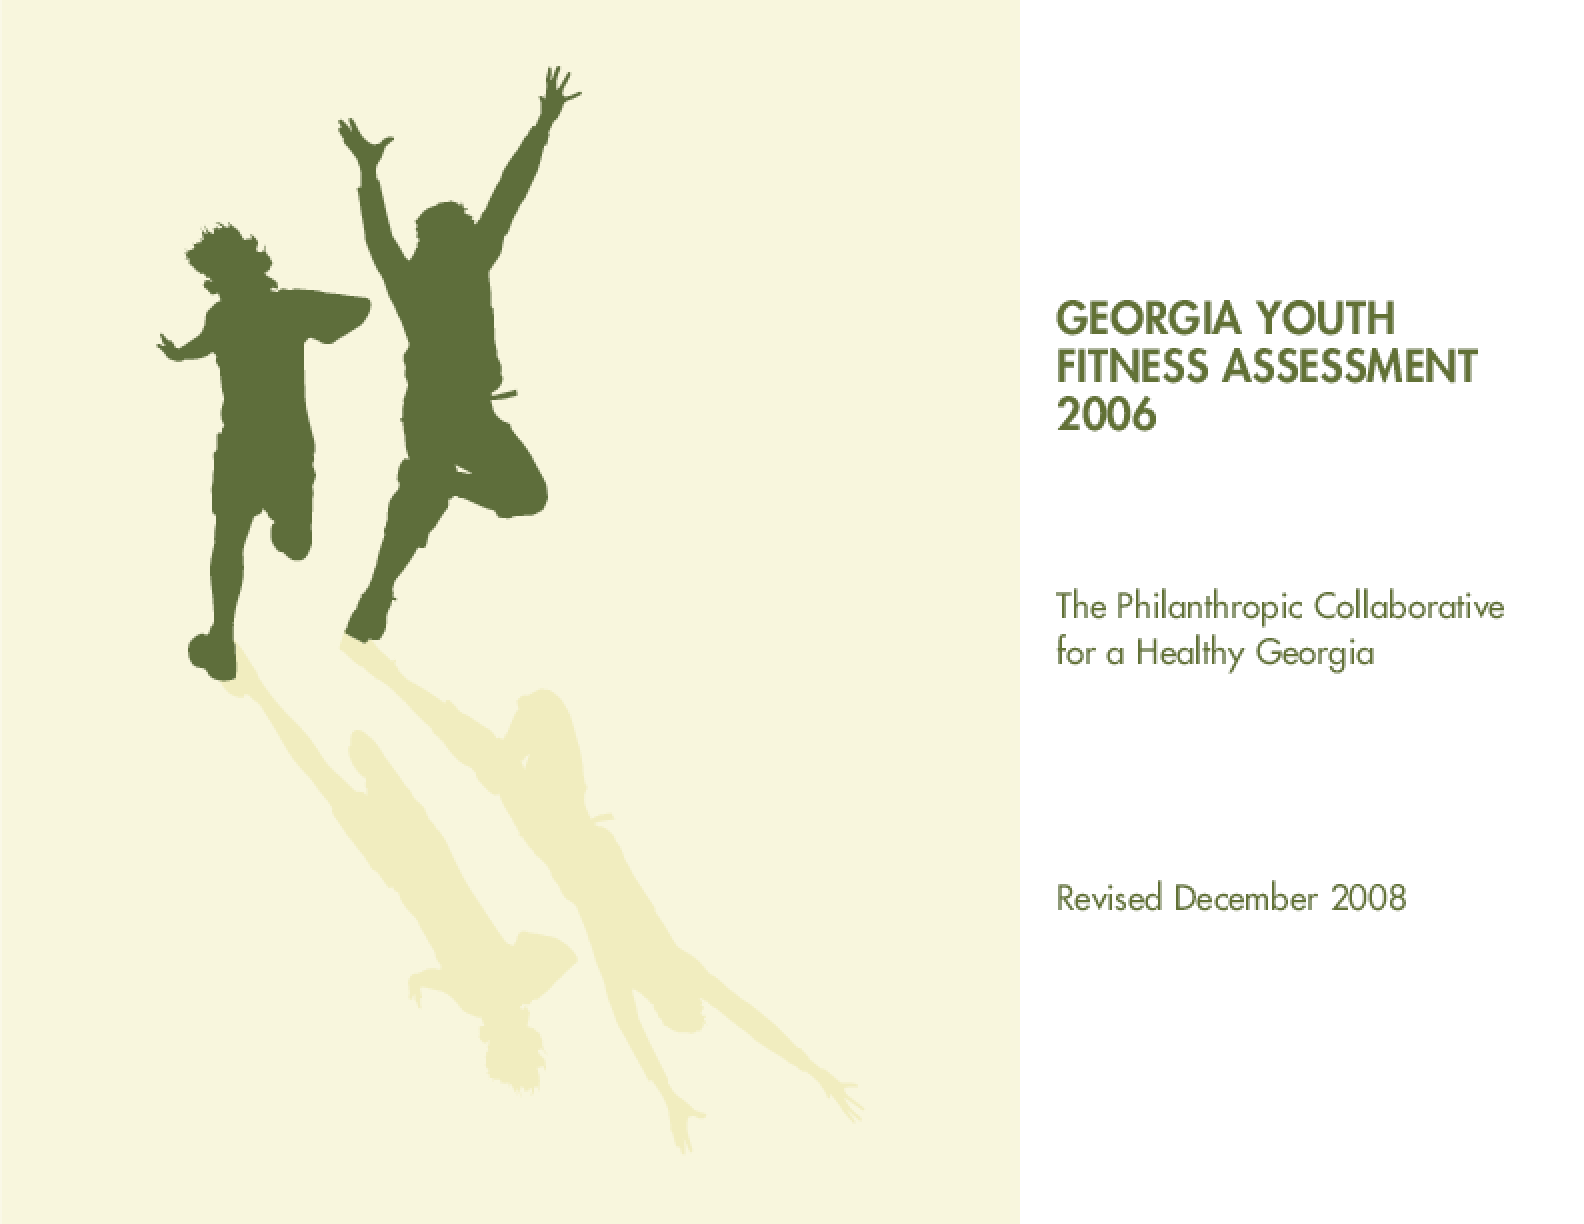 Georgia Youth Fitness Assessment (GYFA)